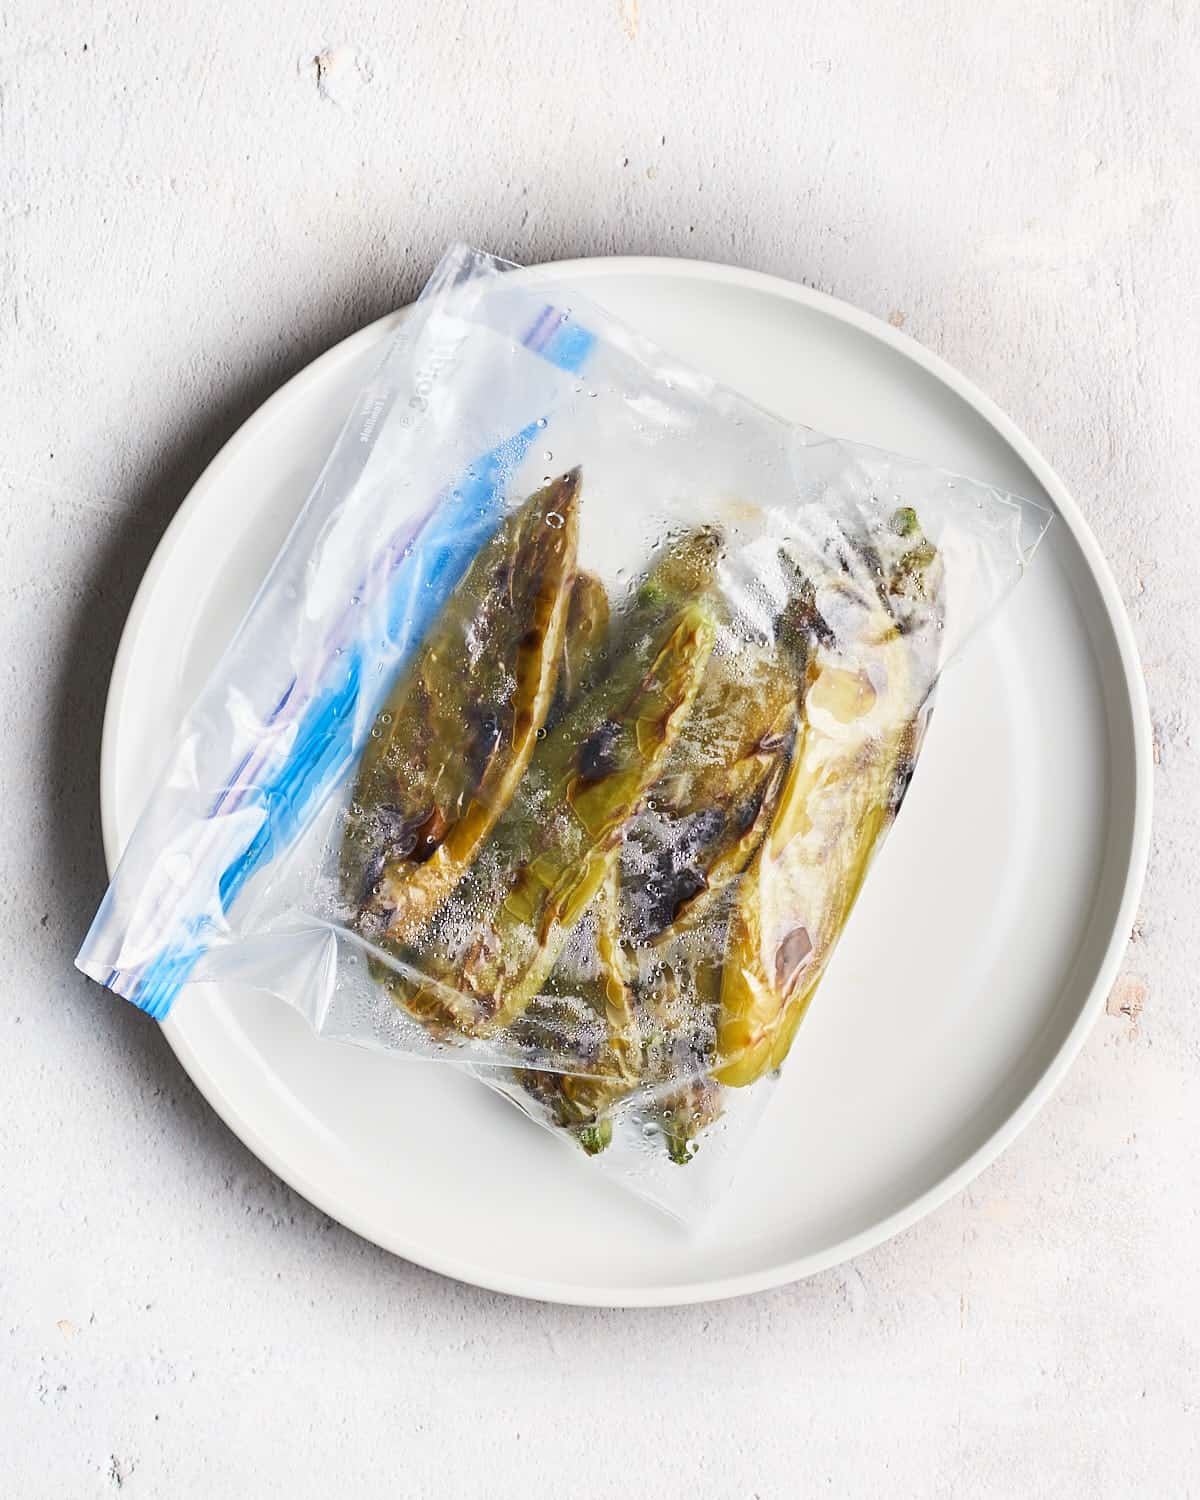 Top down view of Hatch Chiles steaming in a plastic bag on a white plate_Resplendent Kitchen